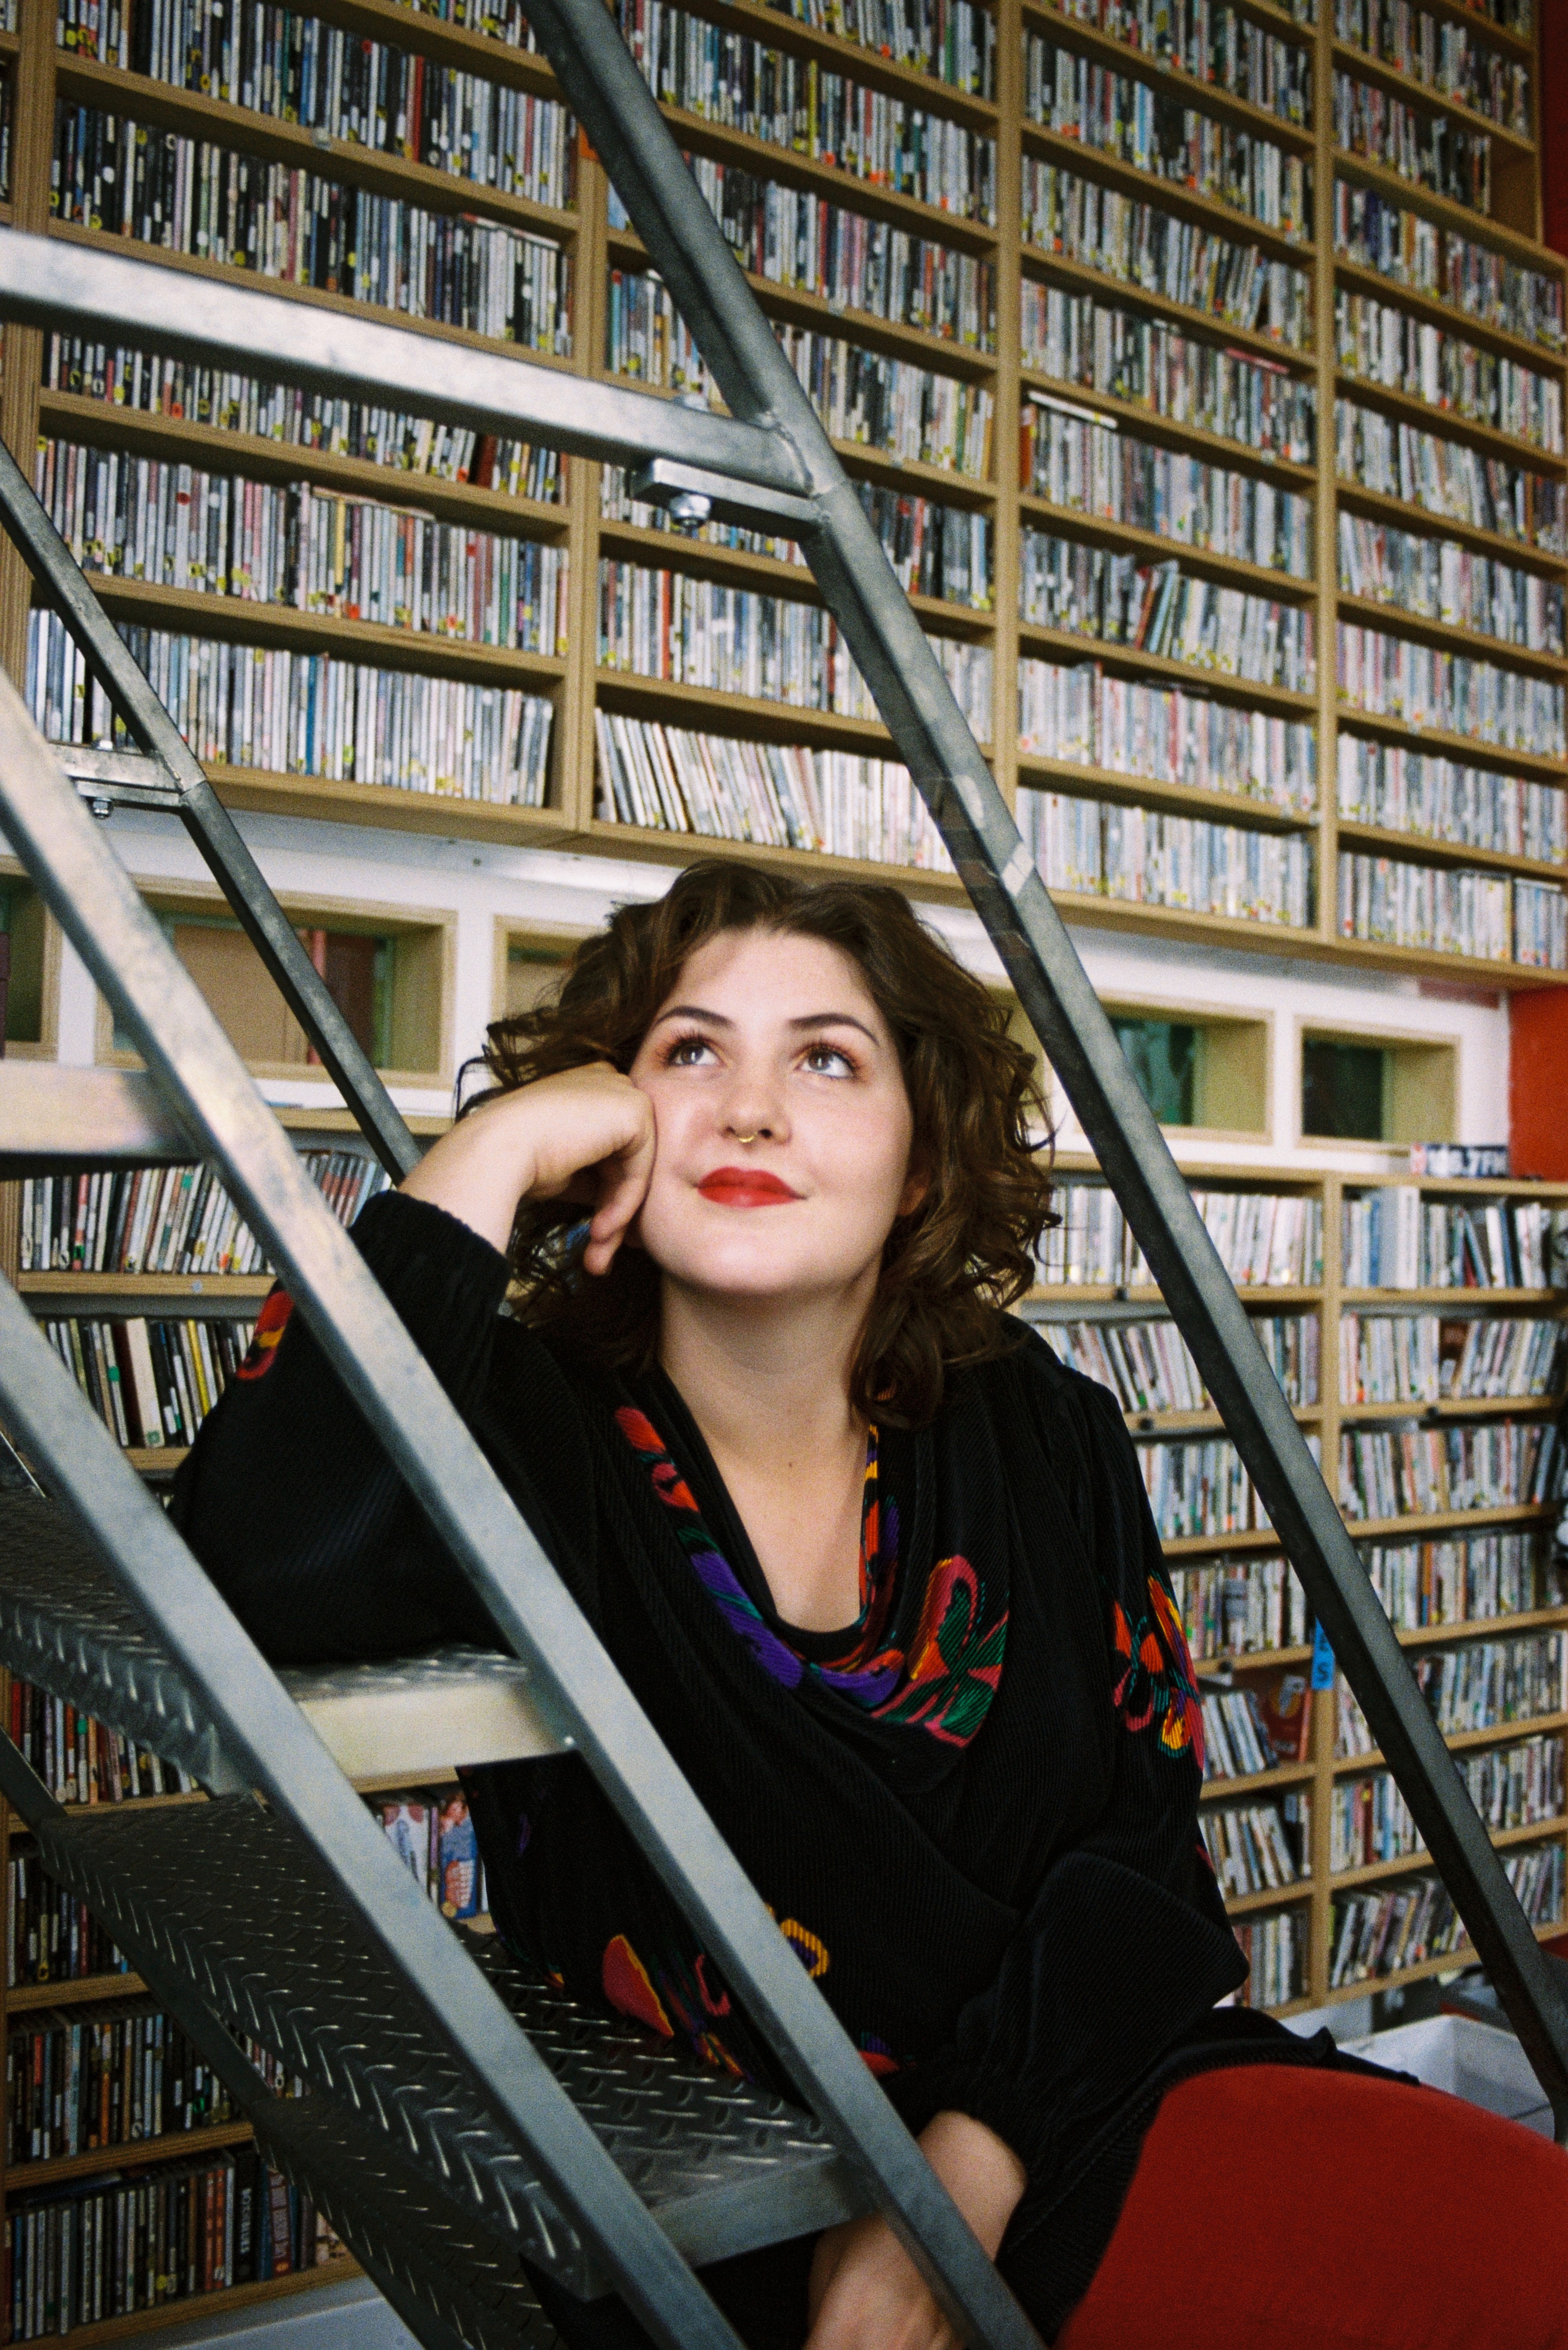 Ella in the PBS Music Library. Photo by Phoebe Veldhuizen